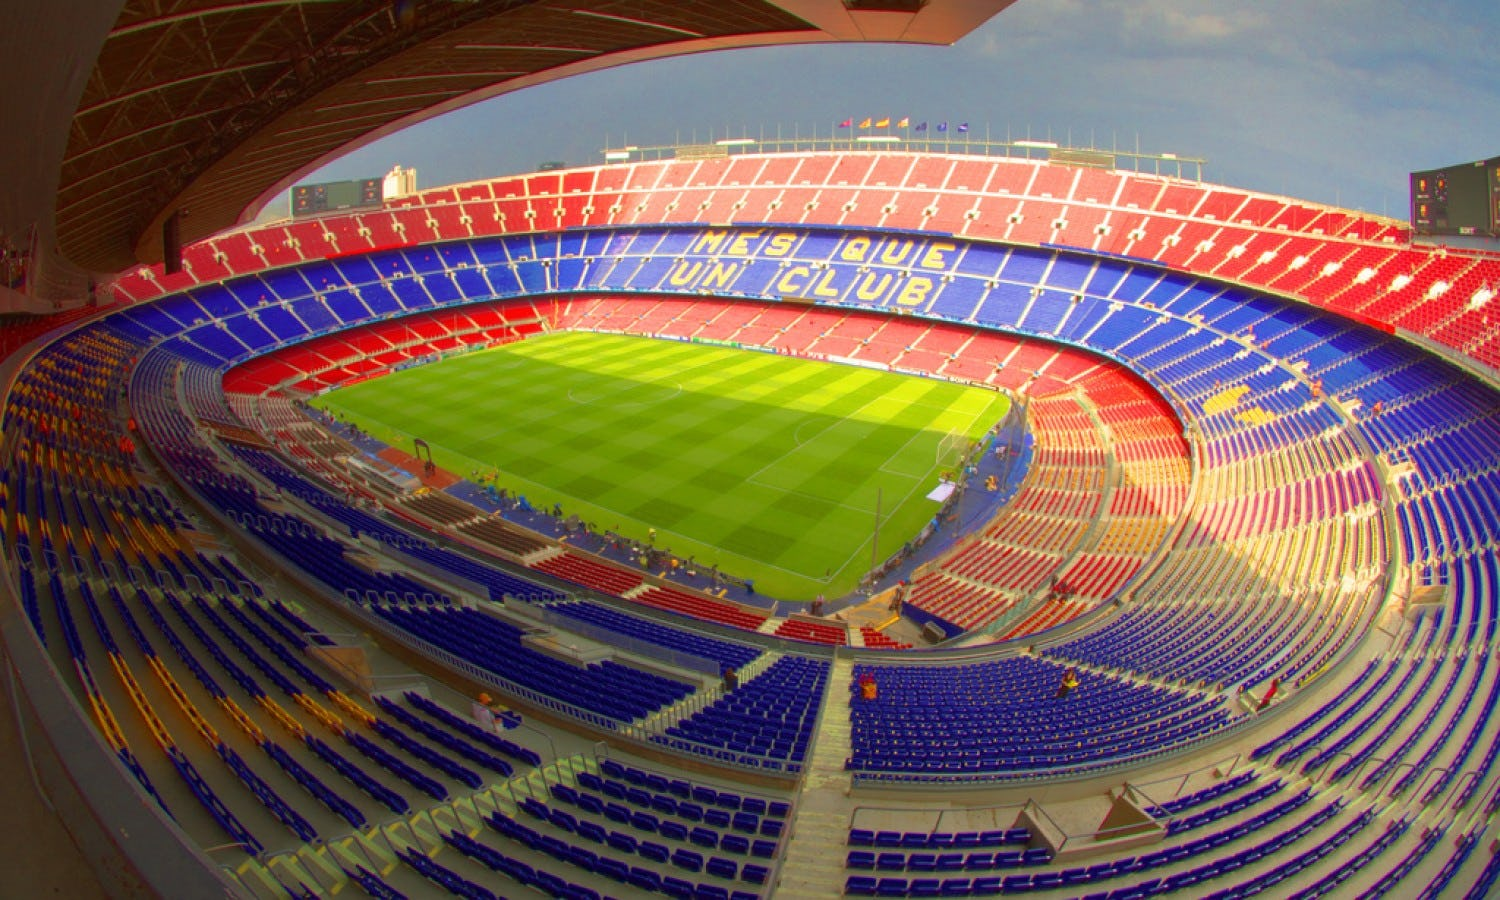 Camp Nou Experience skip-the-line-tickets